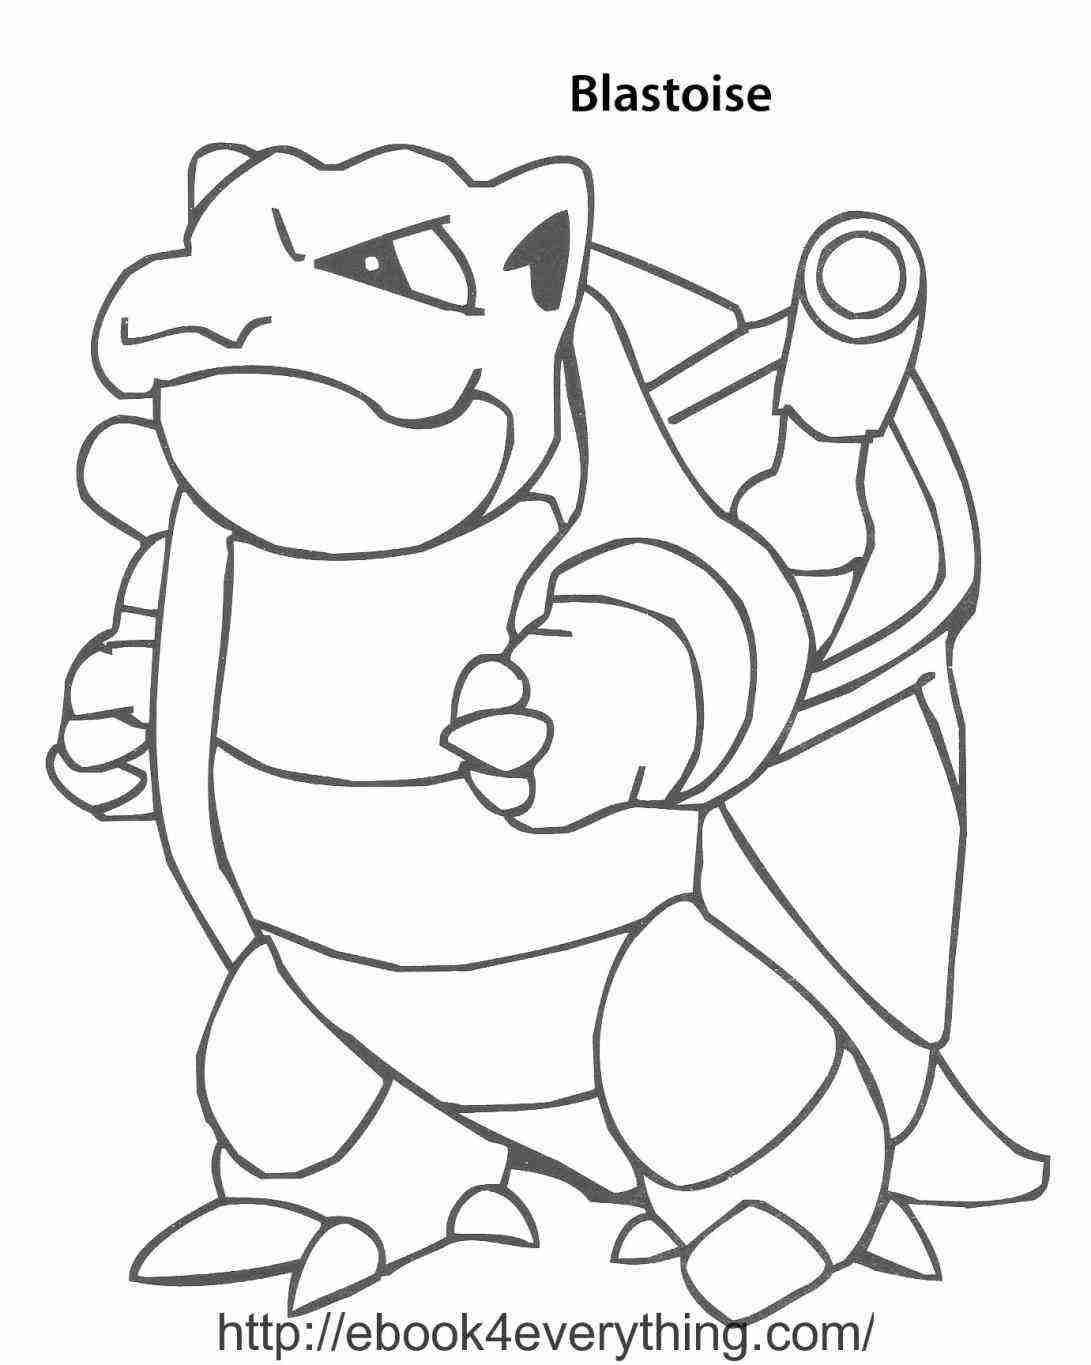 1091x1365 Mega Blastoise Coloring Page Download Pokemon Pages Cartoons Showy